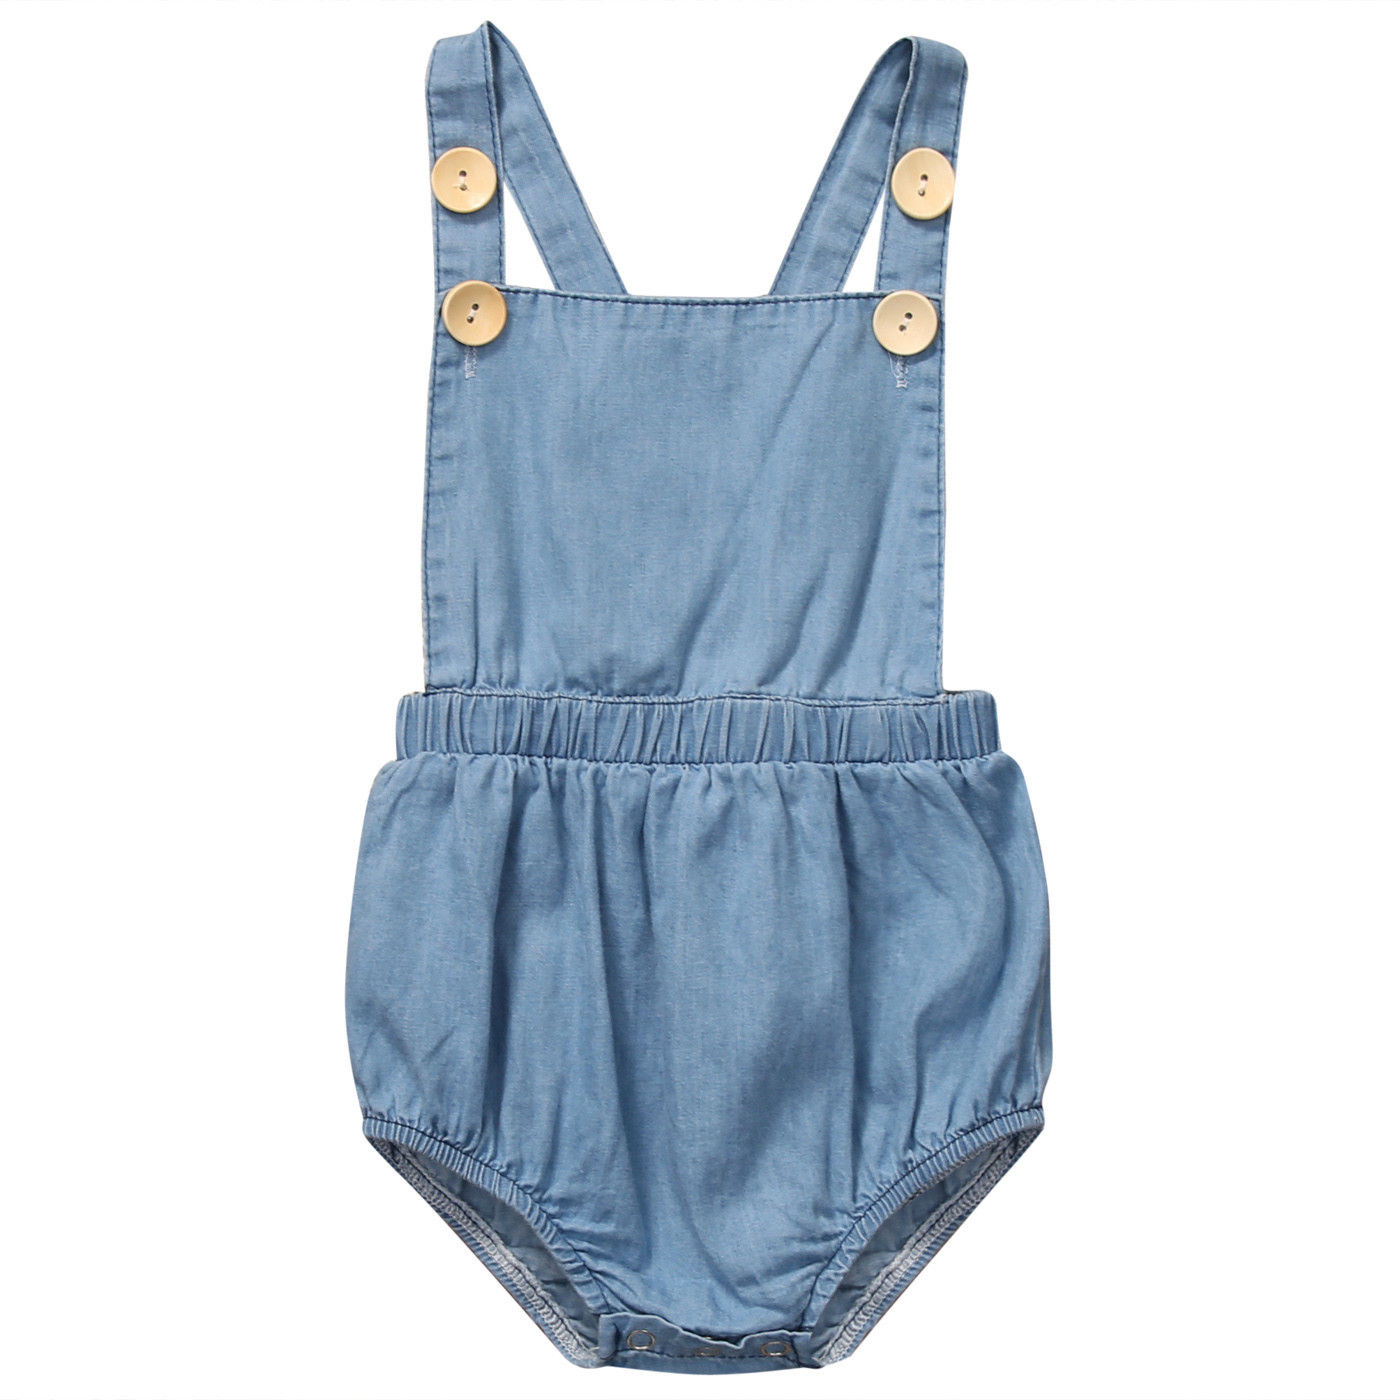 New 2017 Brand Baby Bodysuits Spring summer Babies Newborn Cotton Body Baby Sleeveless Infant Bebe Boy Girl Denim Clothes set